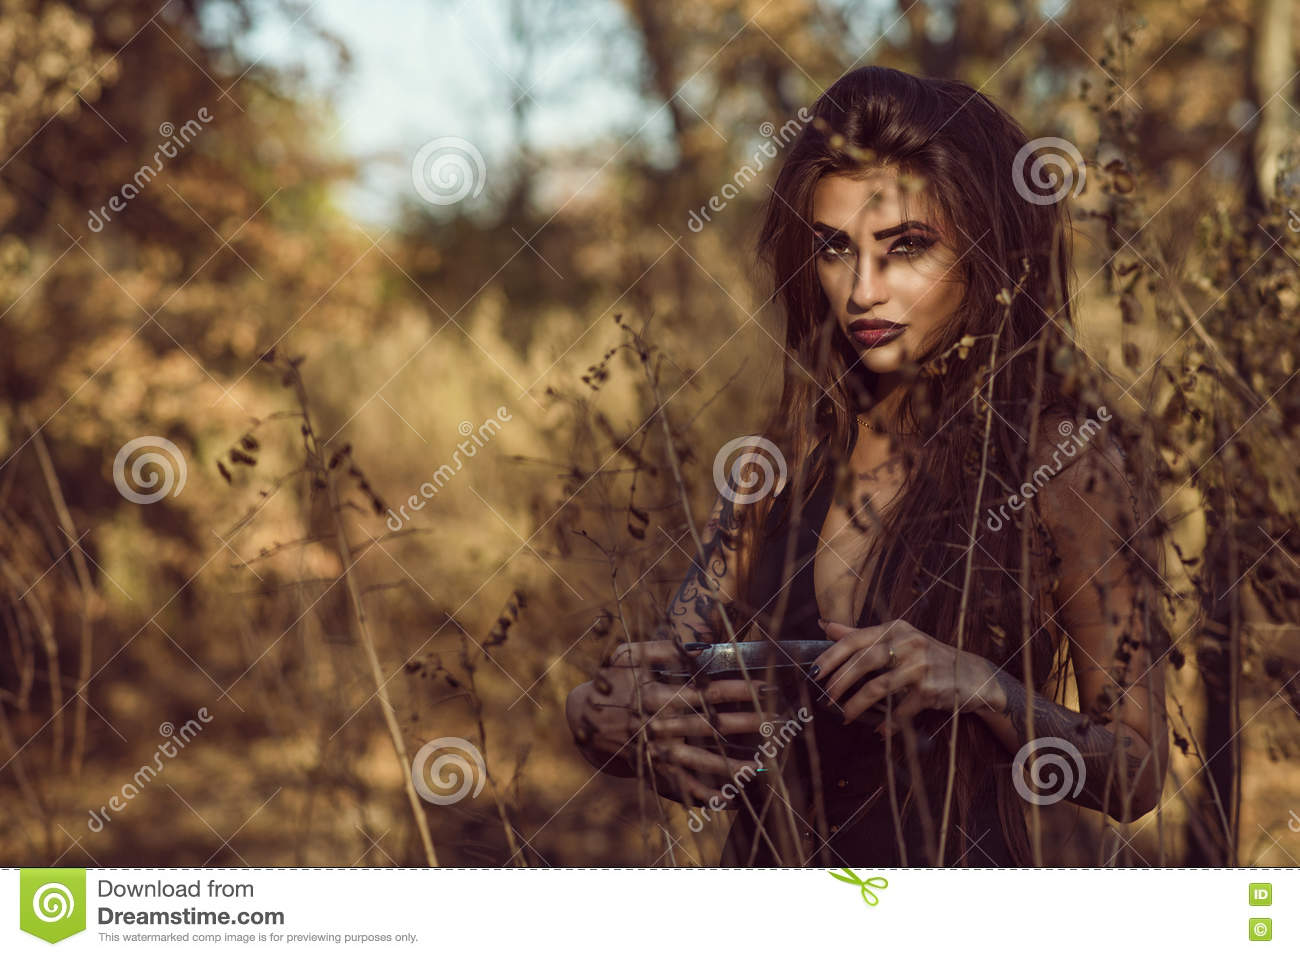 Portrait of charming dangerous young witch holding a pot with magic potion in the woods and looking straight with penetrating gaze